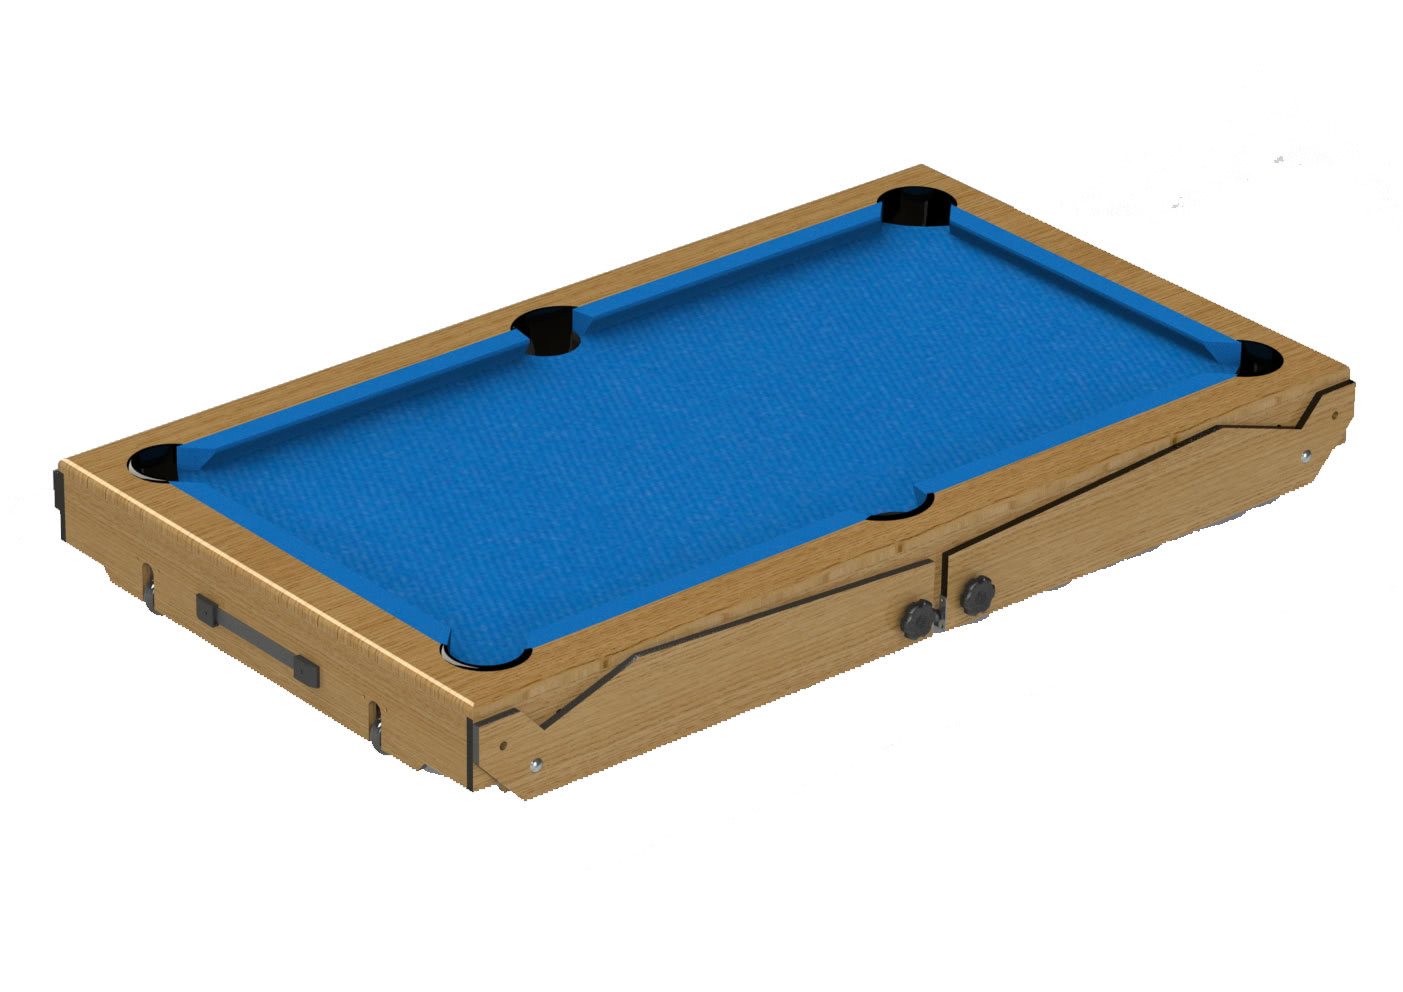 Blf Folding Pool Table Liberty Games